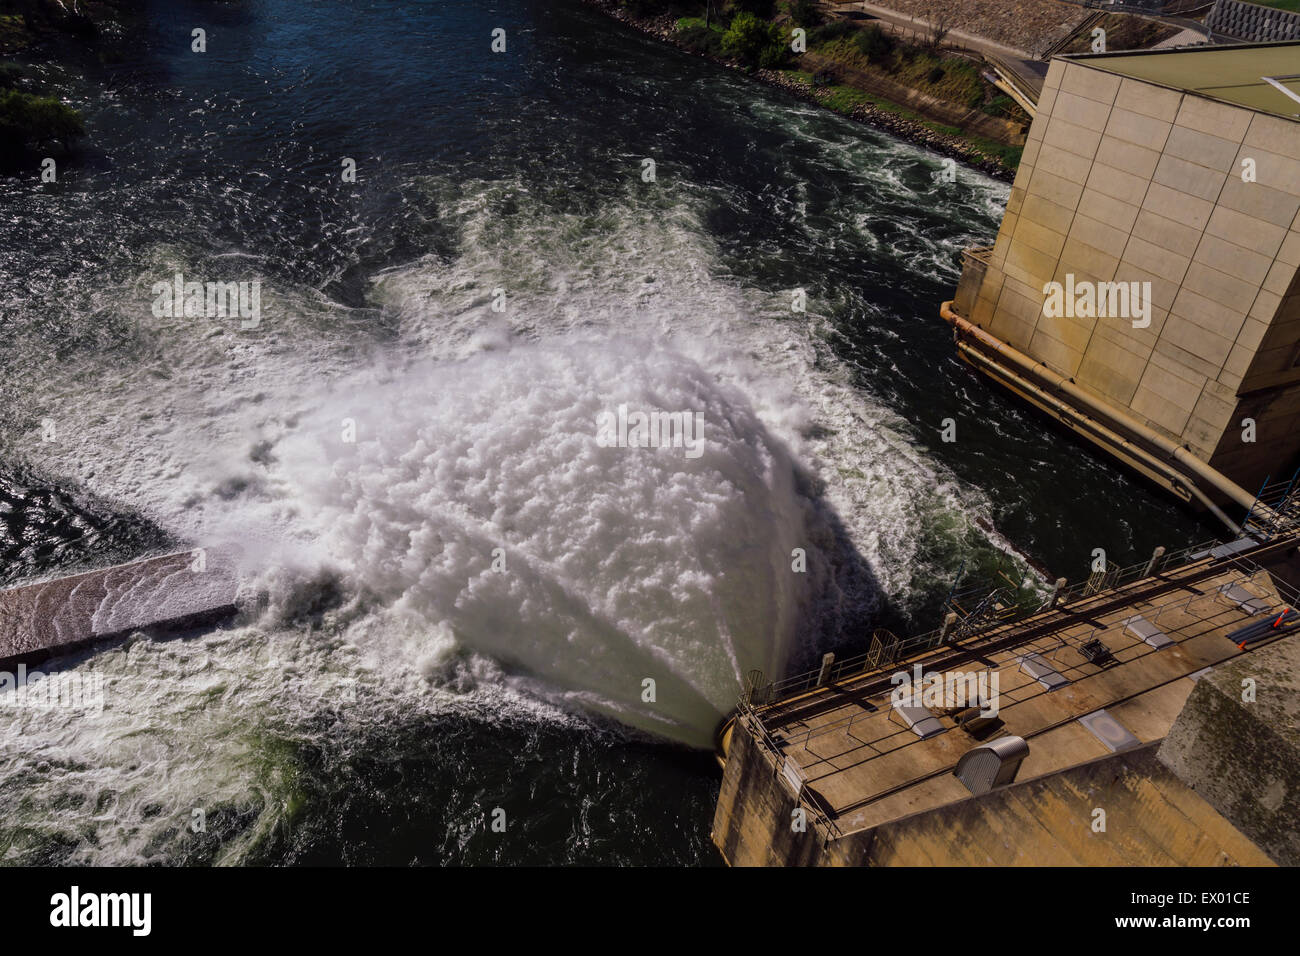 Hume Dam, on border of News South Wales and Victoria, Australia - Stock Image